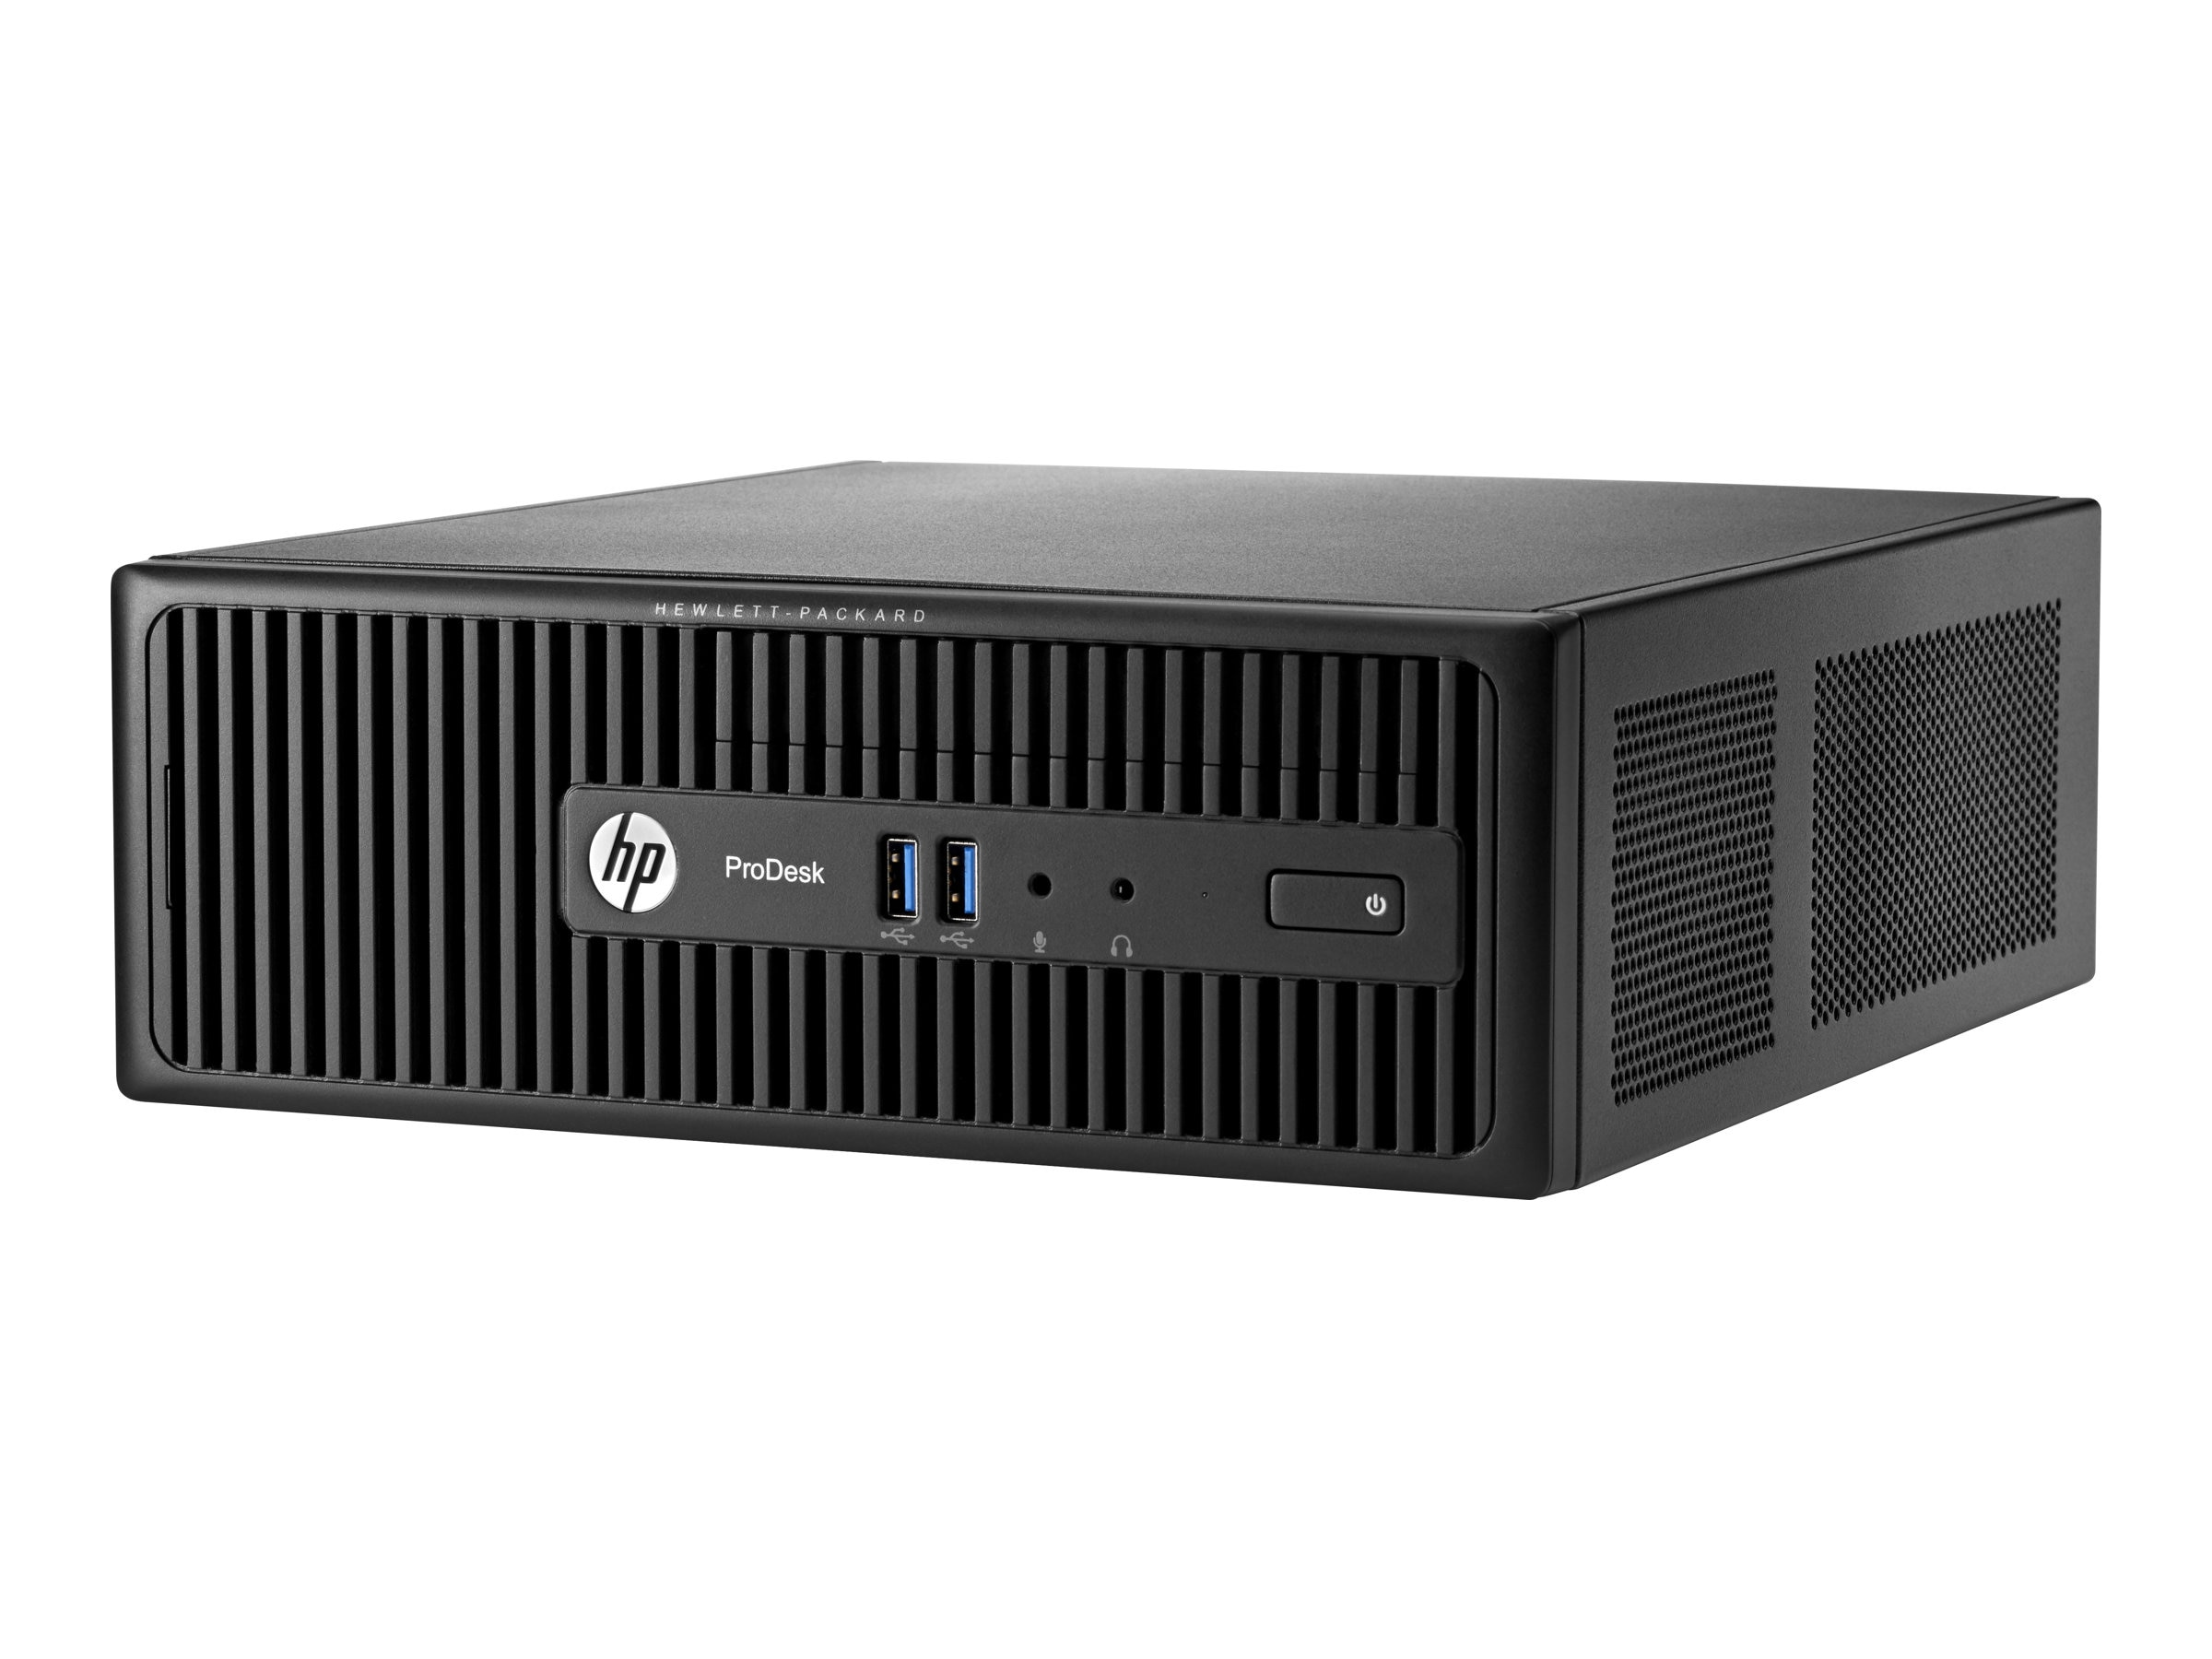 HP Smart Buy ProDesk 400 G2.5 3.0GHz Core i5 4GB RAM 500GB hard drive, P0D14UT#ABA, 24990694, Desktops